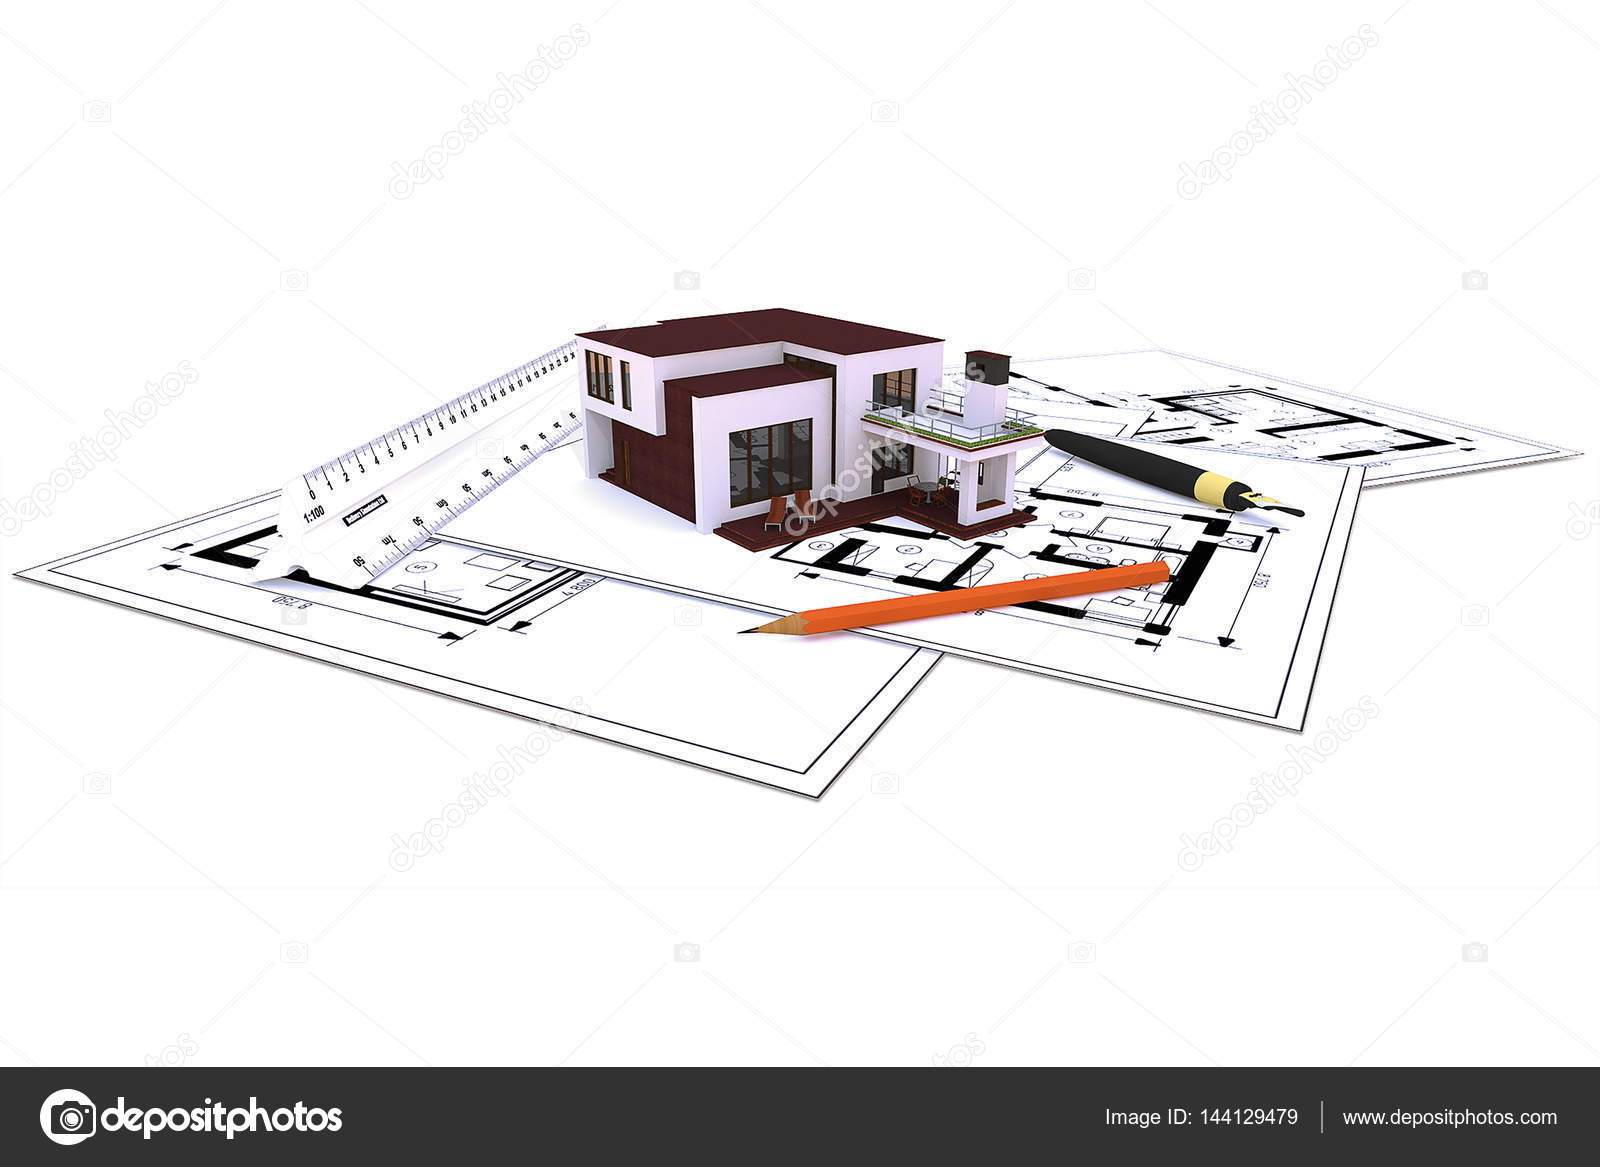 Mini house model stock photo belayagora 144129479 background with the image of a mini model house with blueprints in the workplace photo by belayagora ccuart Gallery